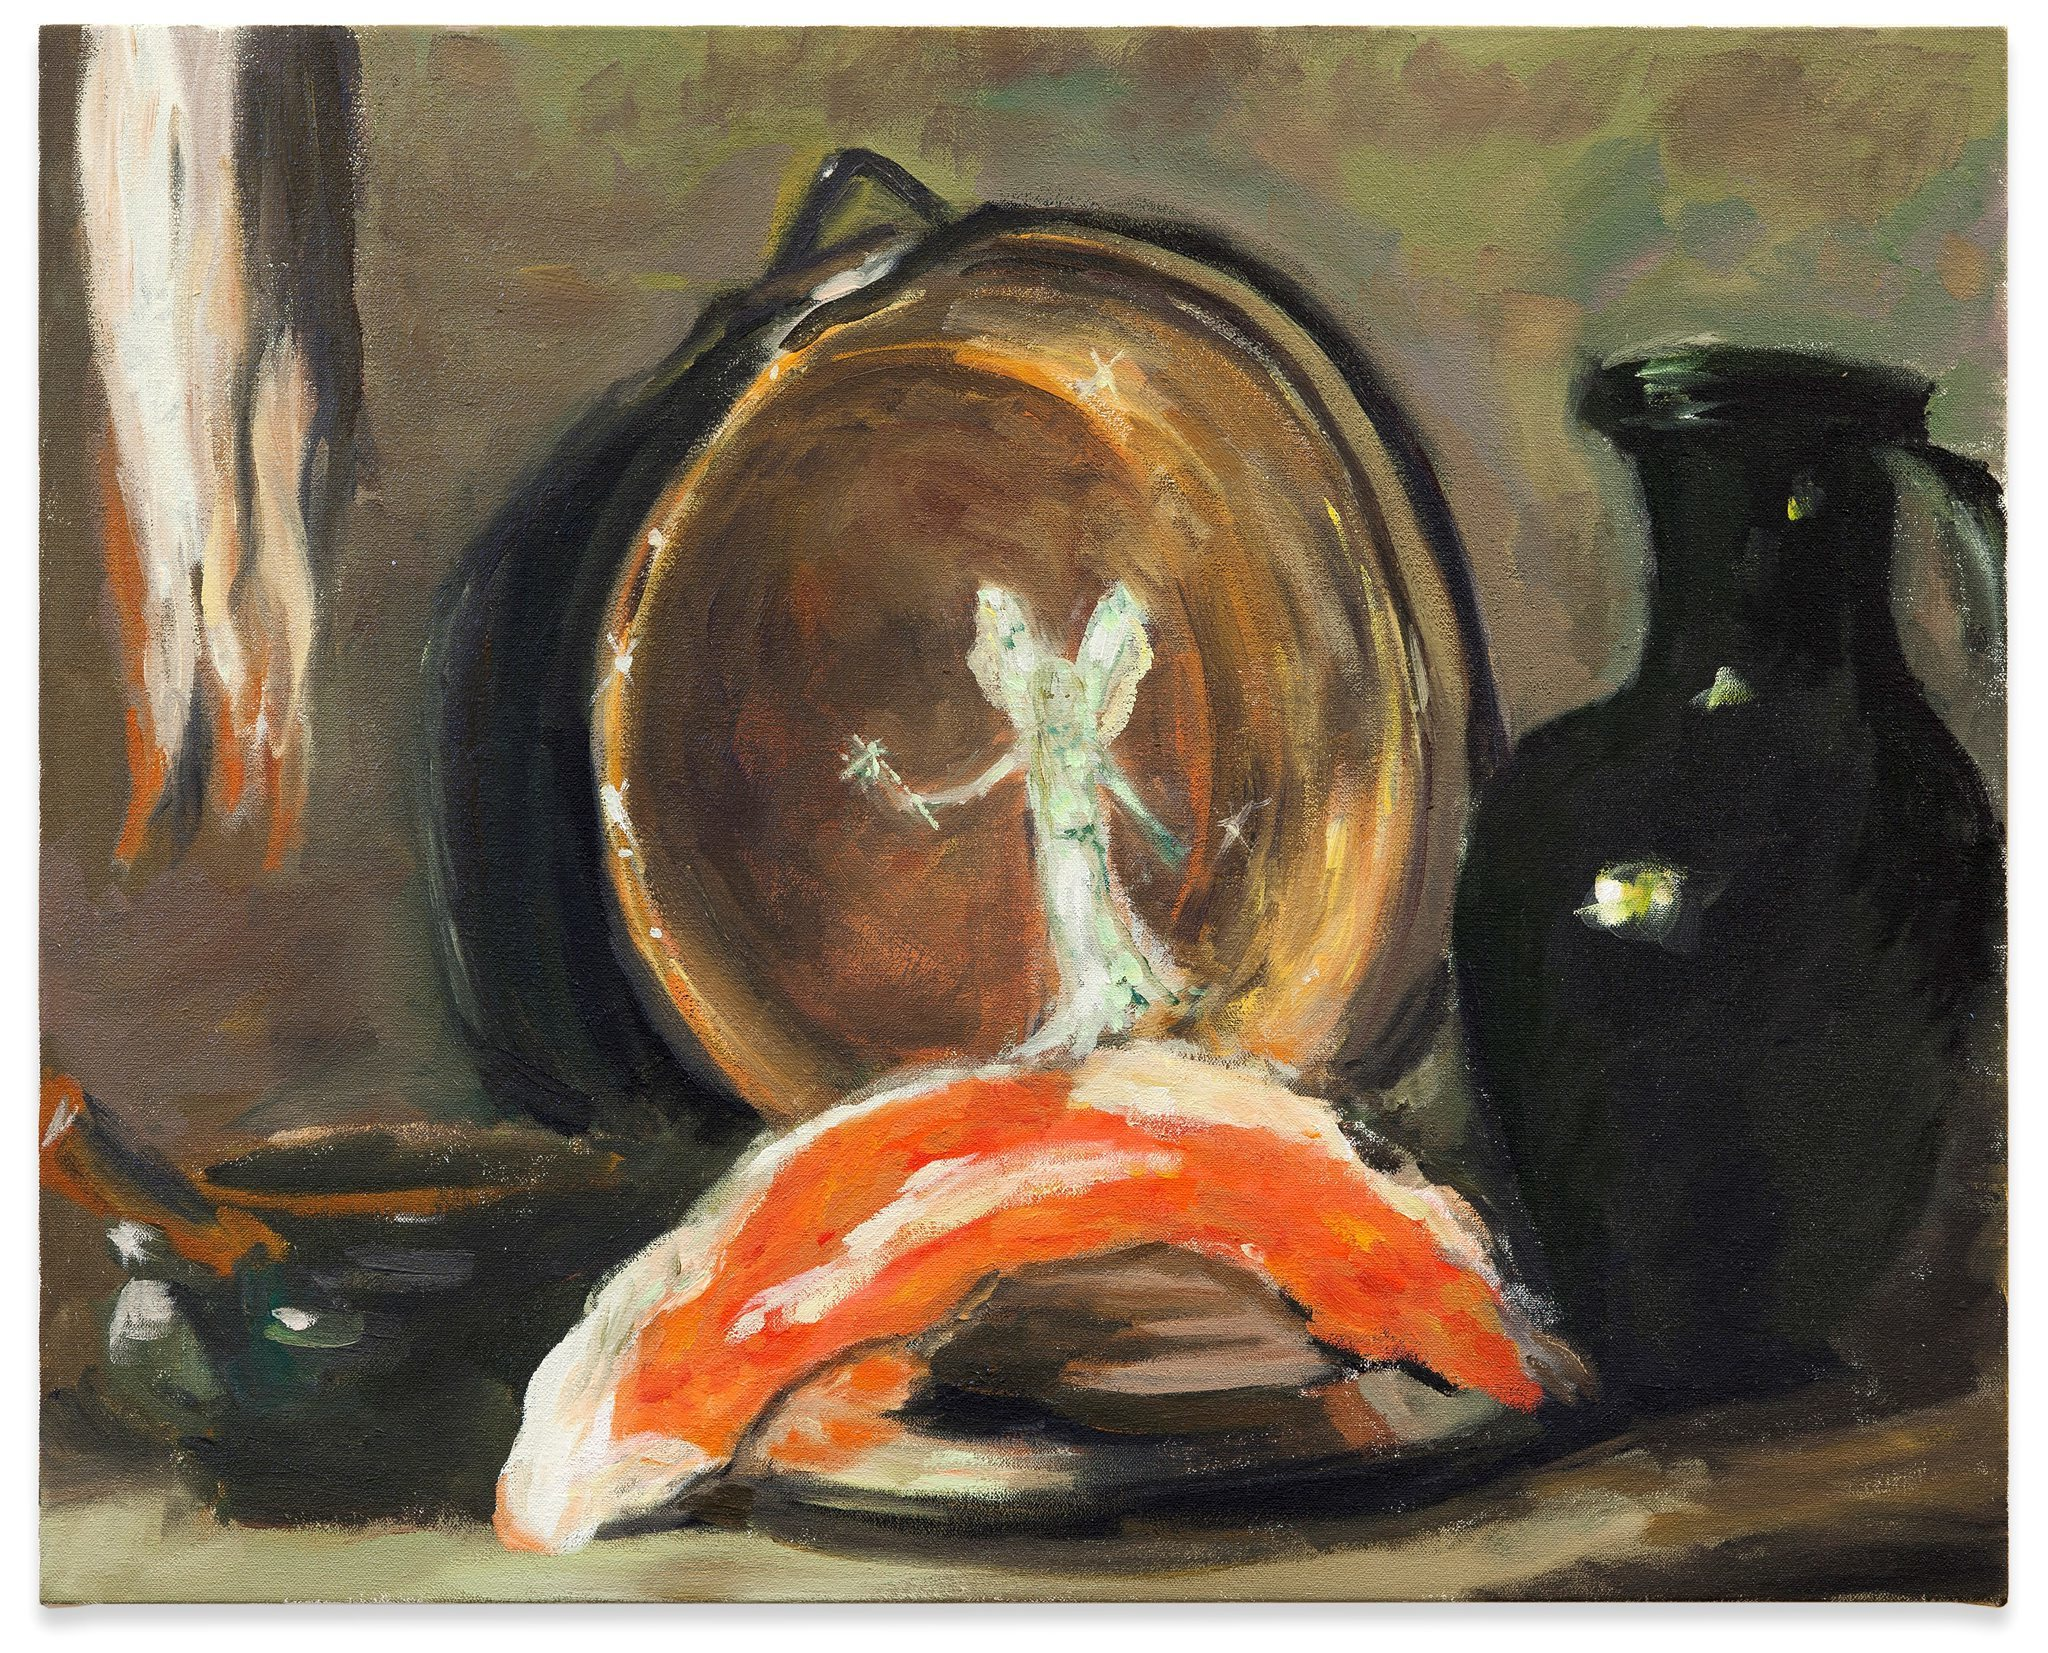 (Karen Kilimnik, 'The Fairy cleaning the copper pot with Fairy Dish Soap', 2014)